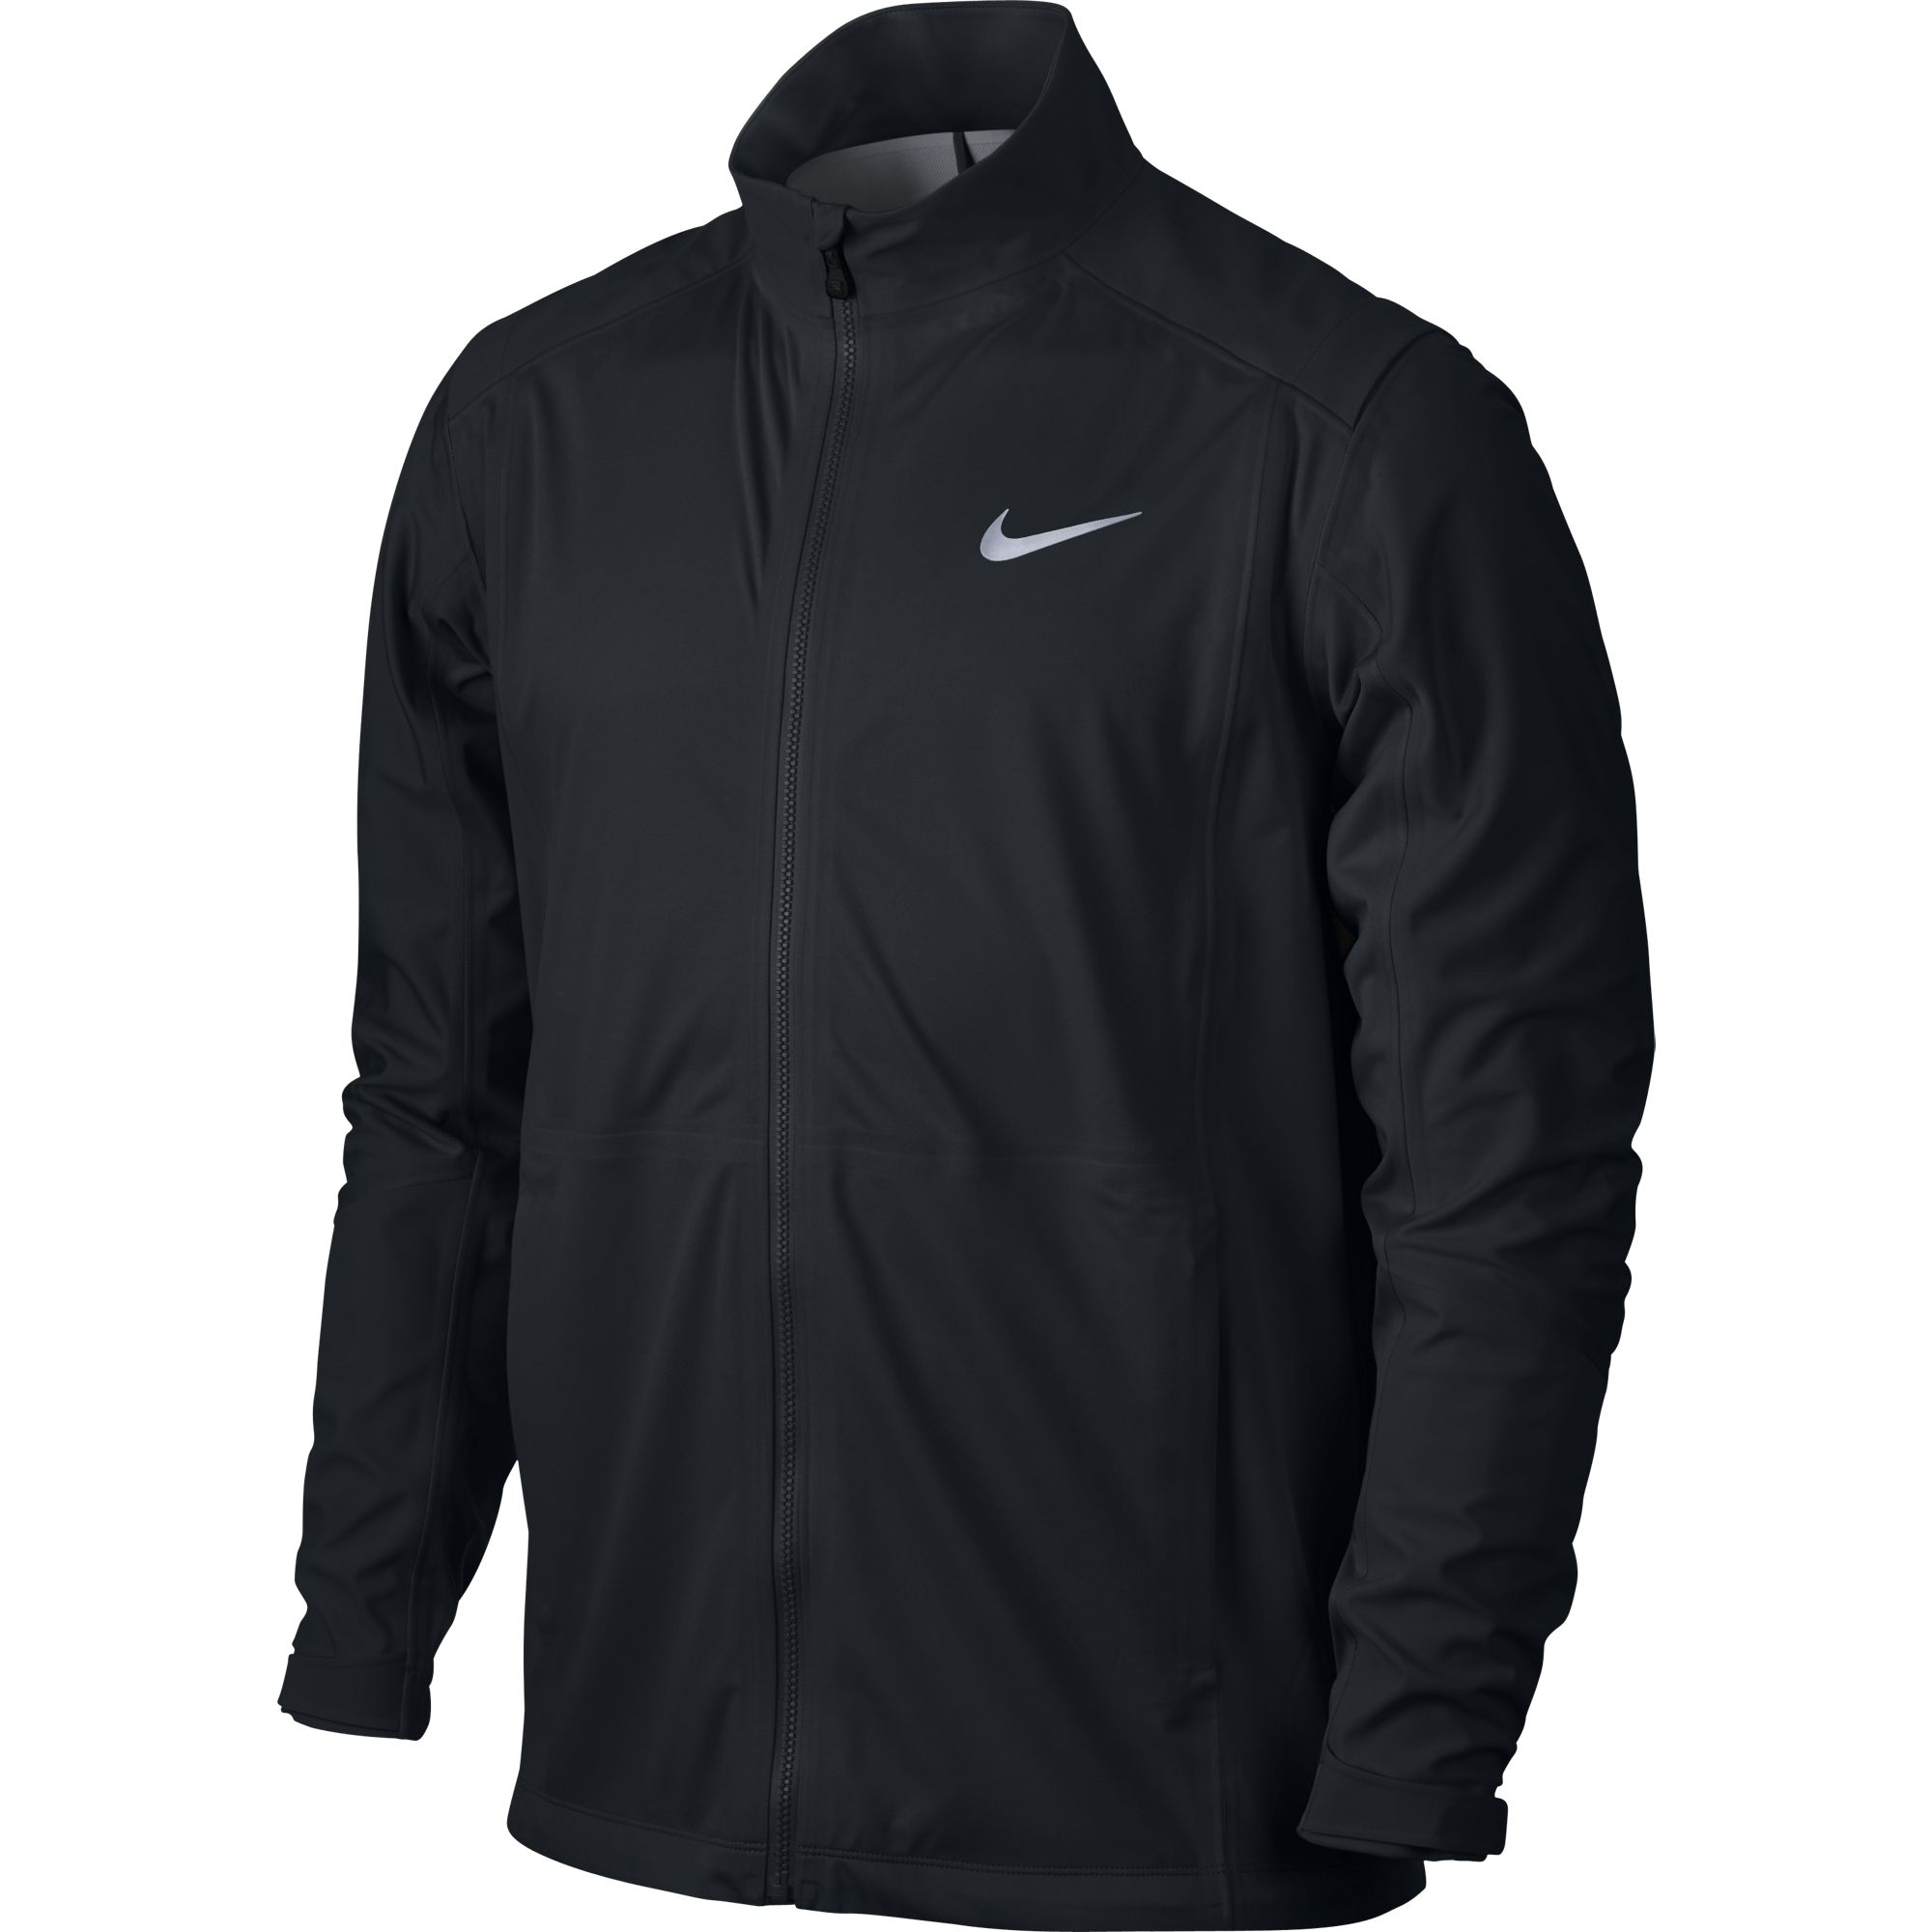 2017 Nike Golf Hyperadapt Storm-Fit Zip Golf Jacket Style # 687028; Picture  2 of 3 ...